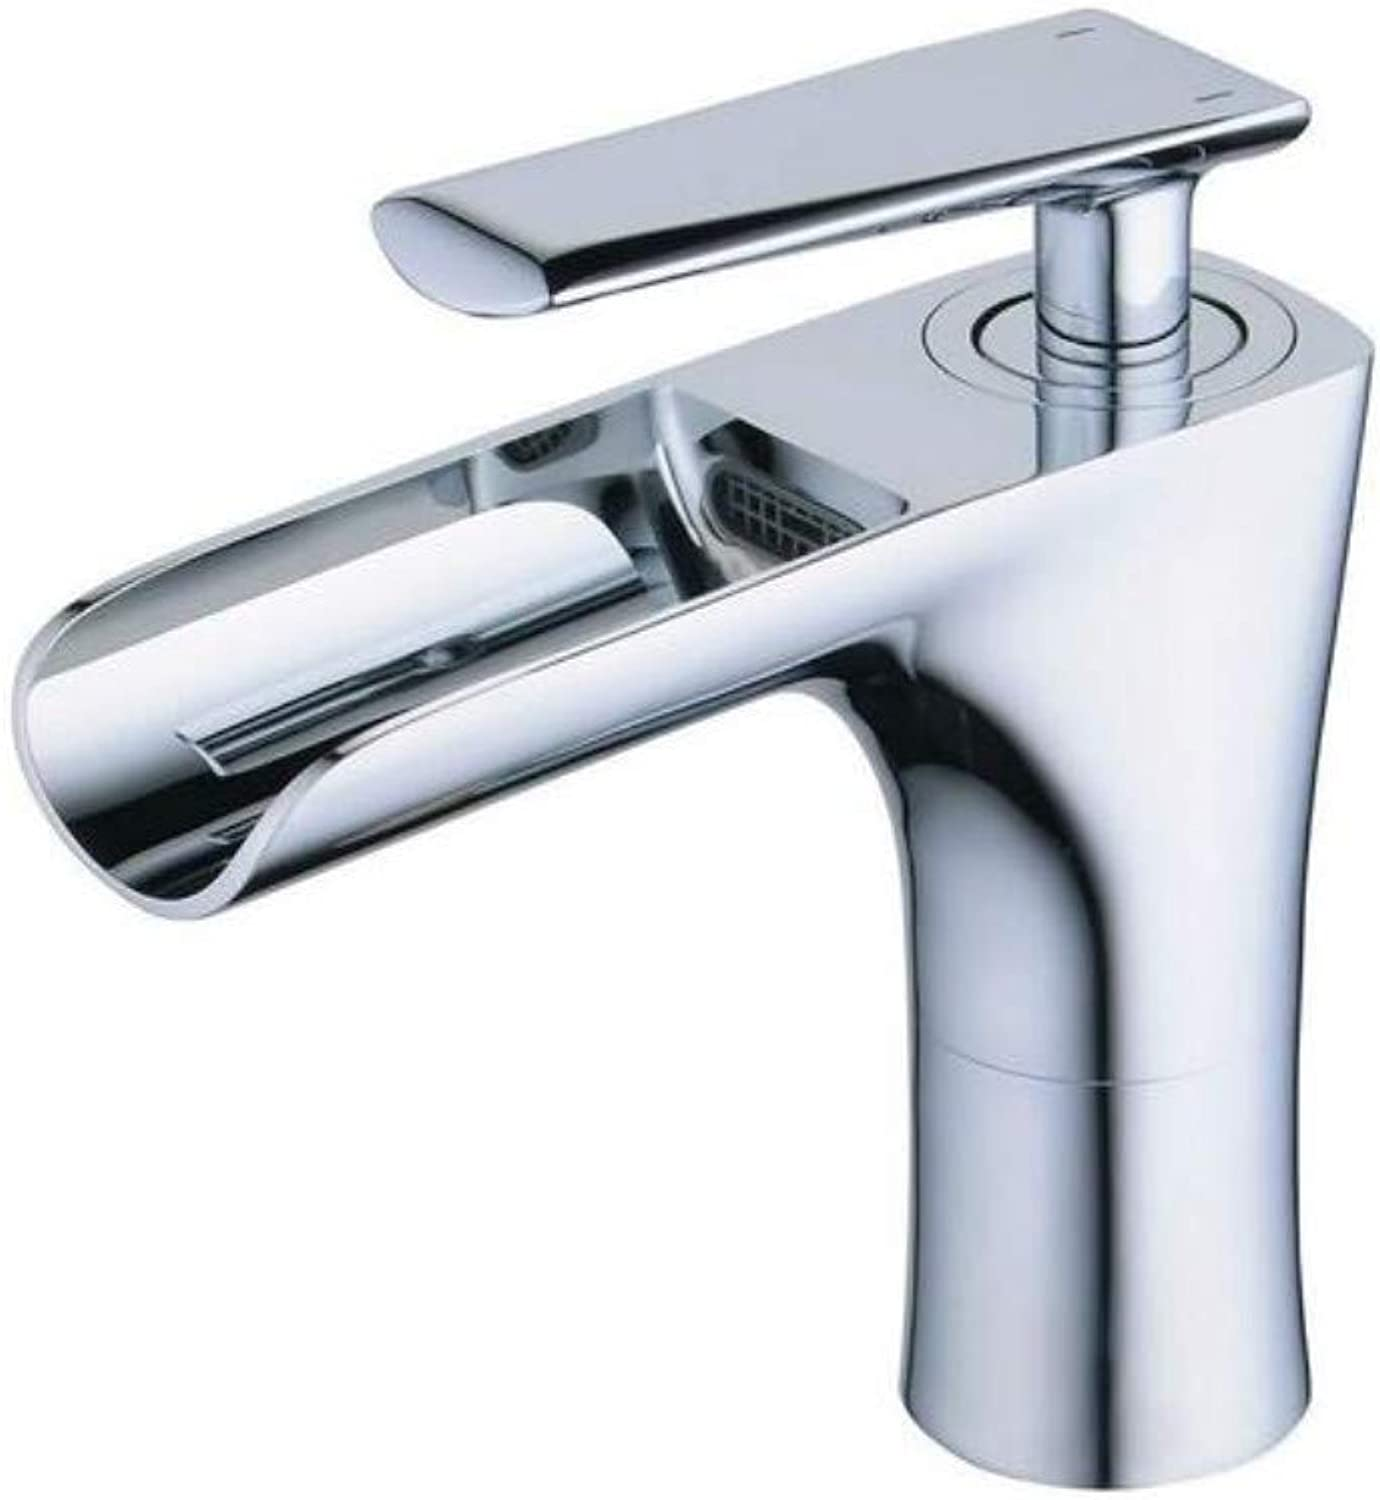 Brass Wall Faucet Chrome Brass Faucetsingle Lever Single Hole with Fittings Polished Chrome